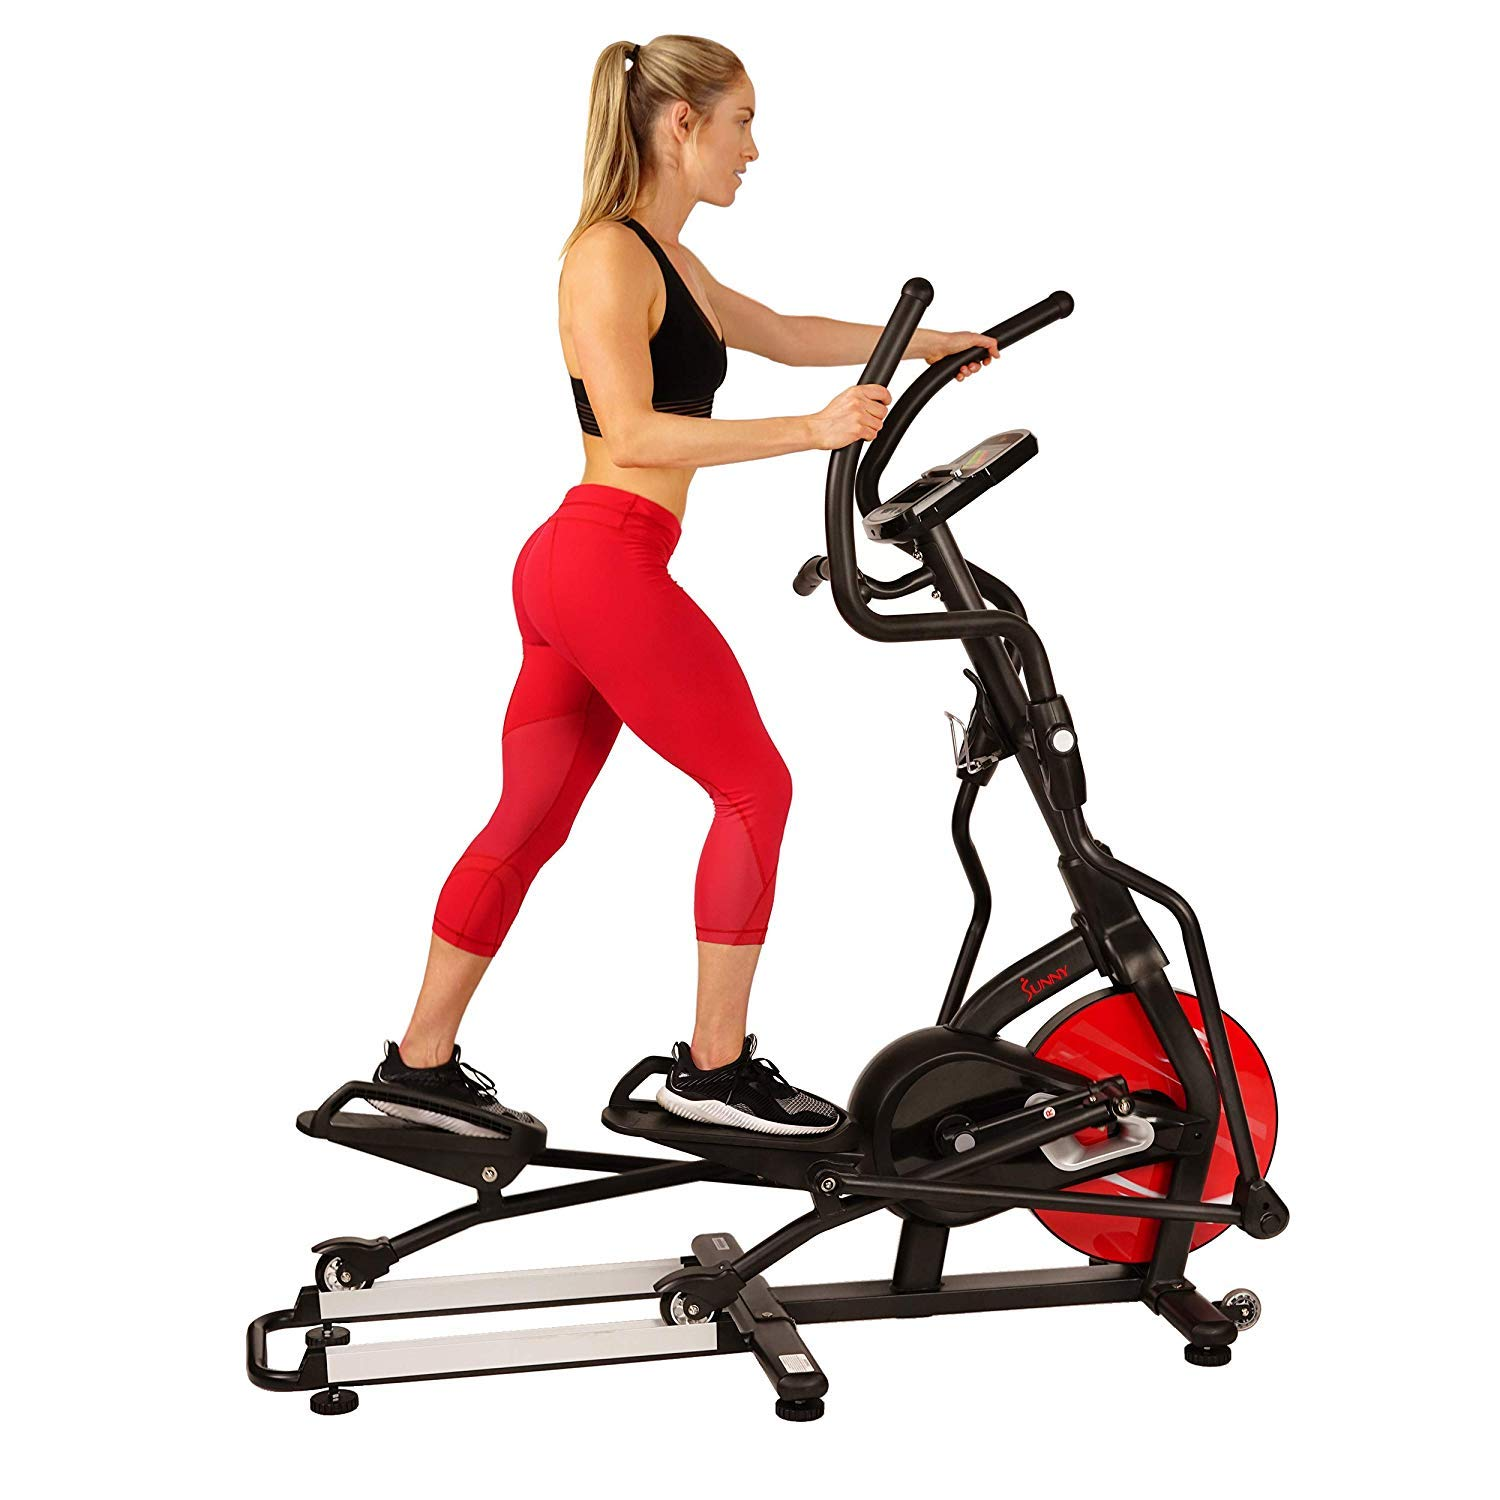 Sunny Health & Fitness Magnetic Elliptical Trainer Machine w/Tablet Holder, LCD Monitor, 265 Max Weight and Pulse Monitor - Stride Zone - SF-E3865 by Sunny Health & Fitness